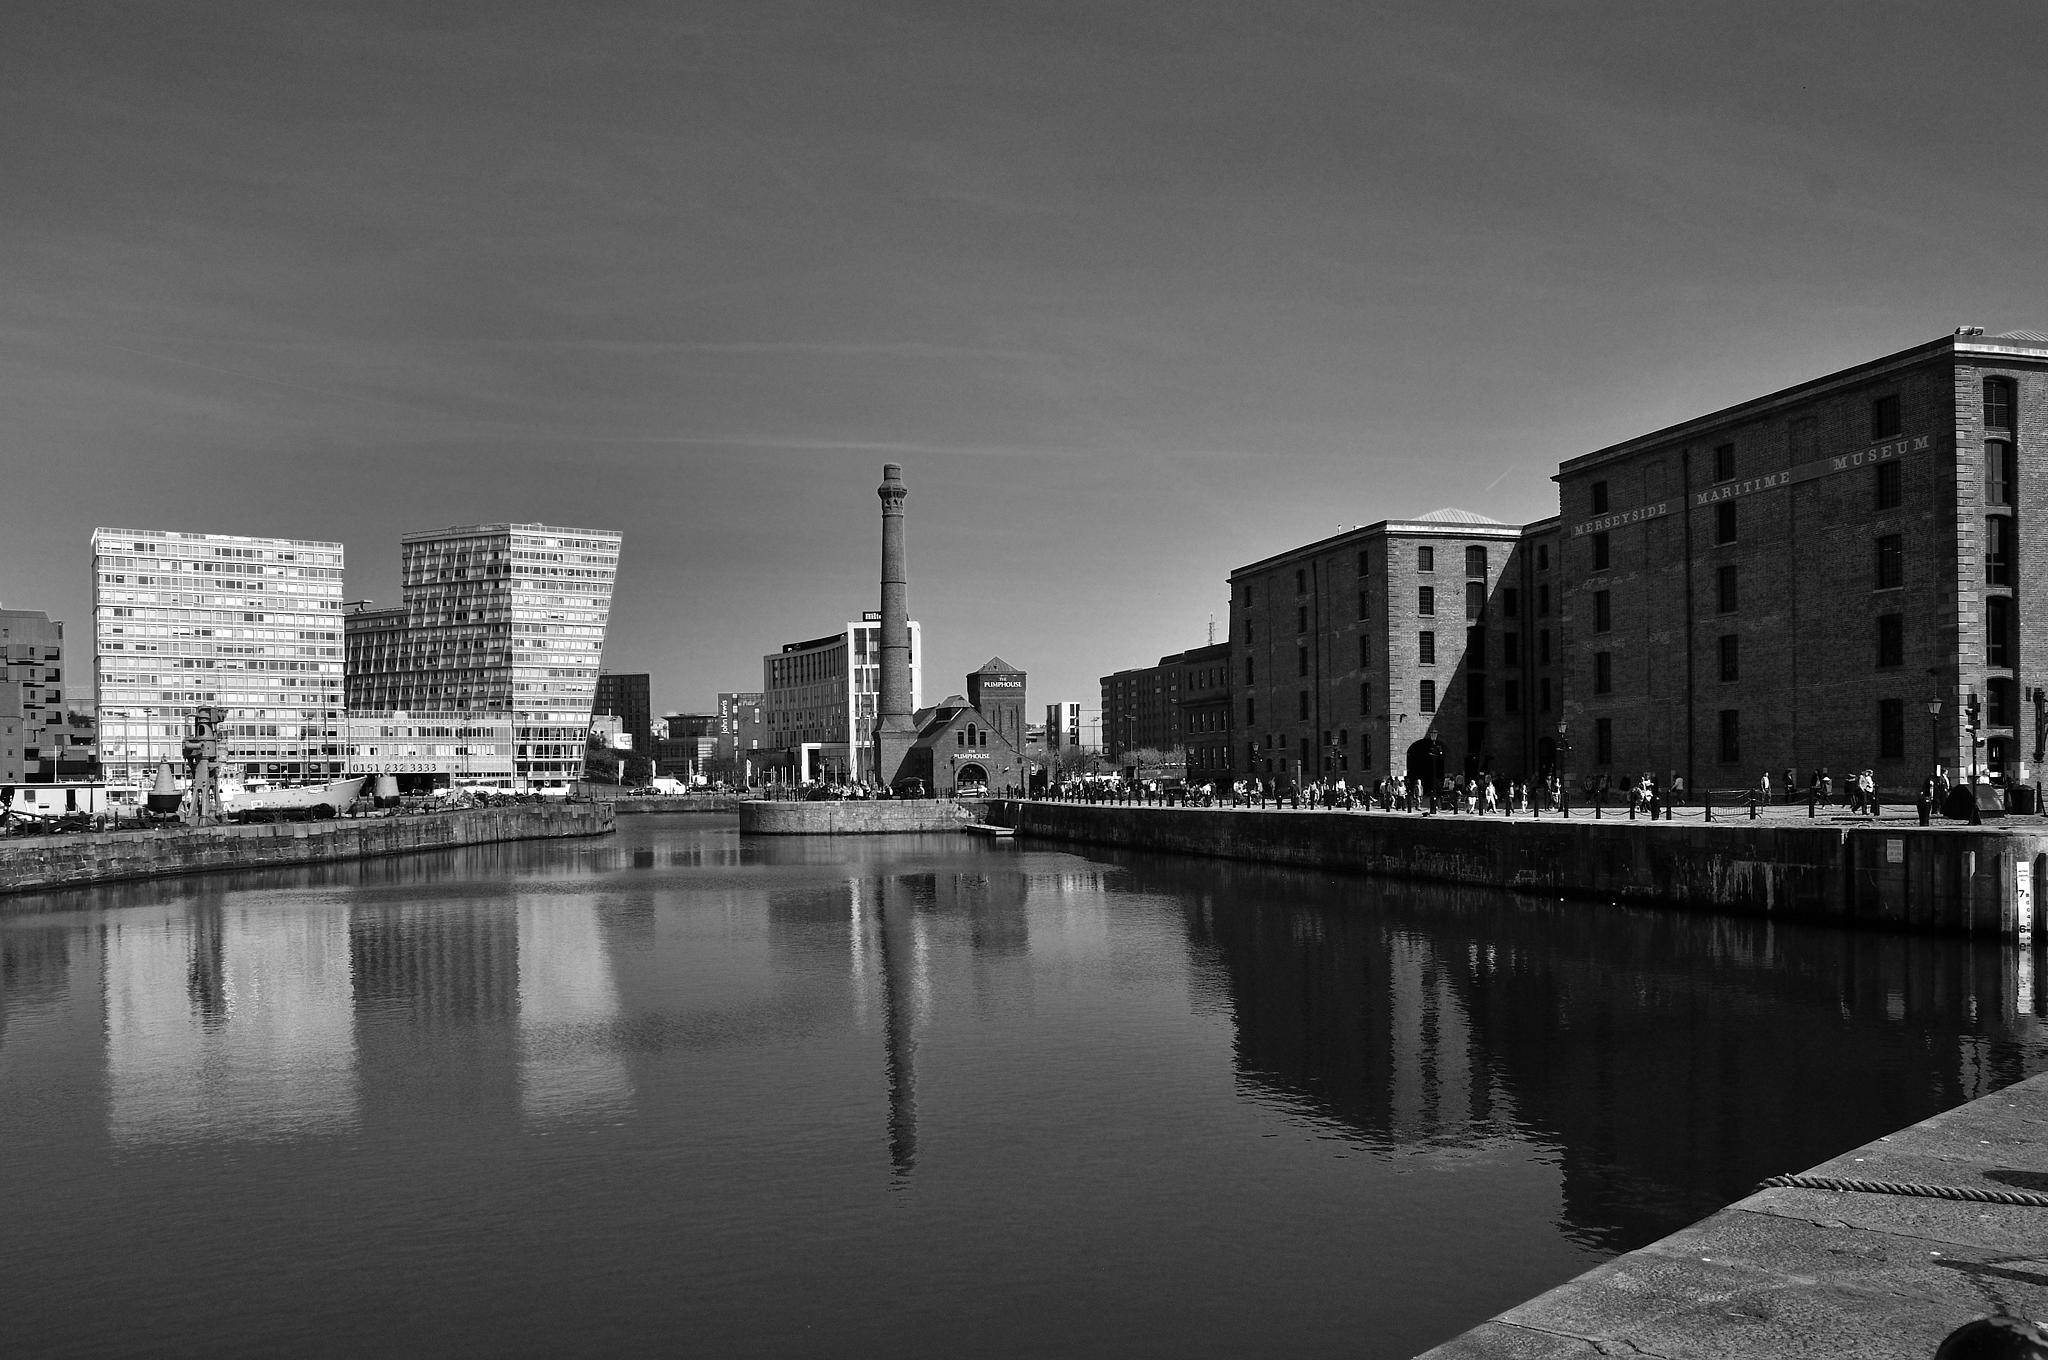 Canning Dock by chris.jennings.355